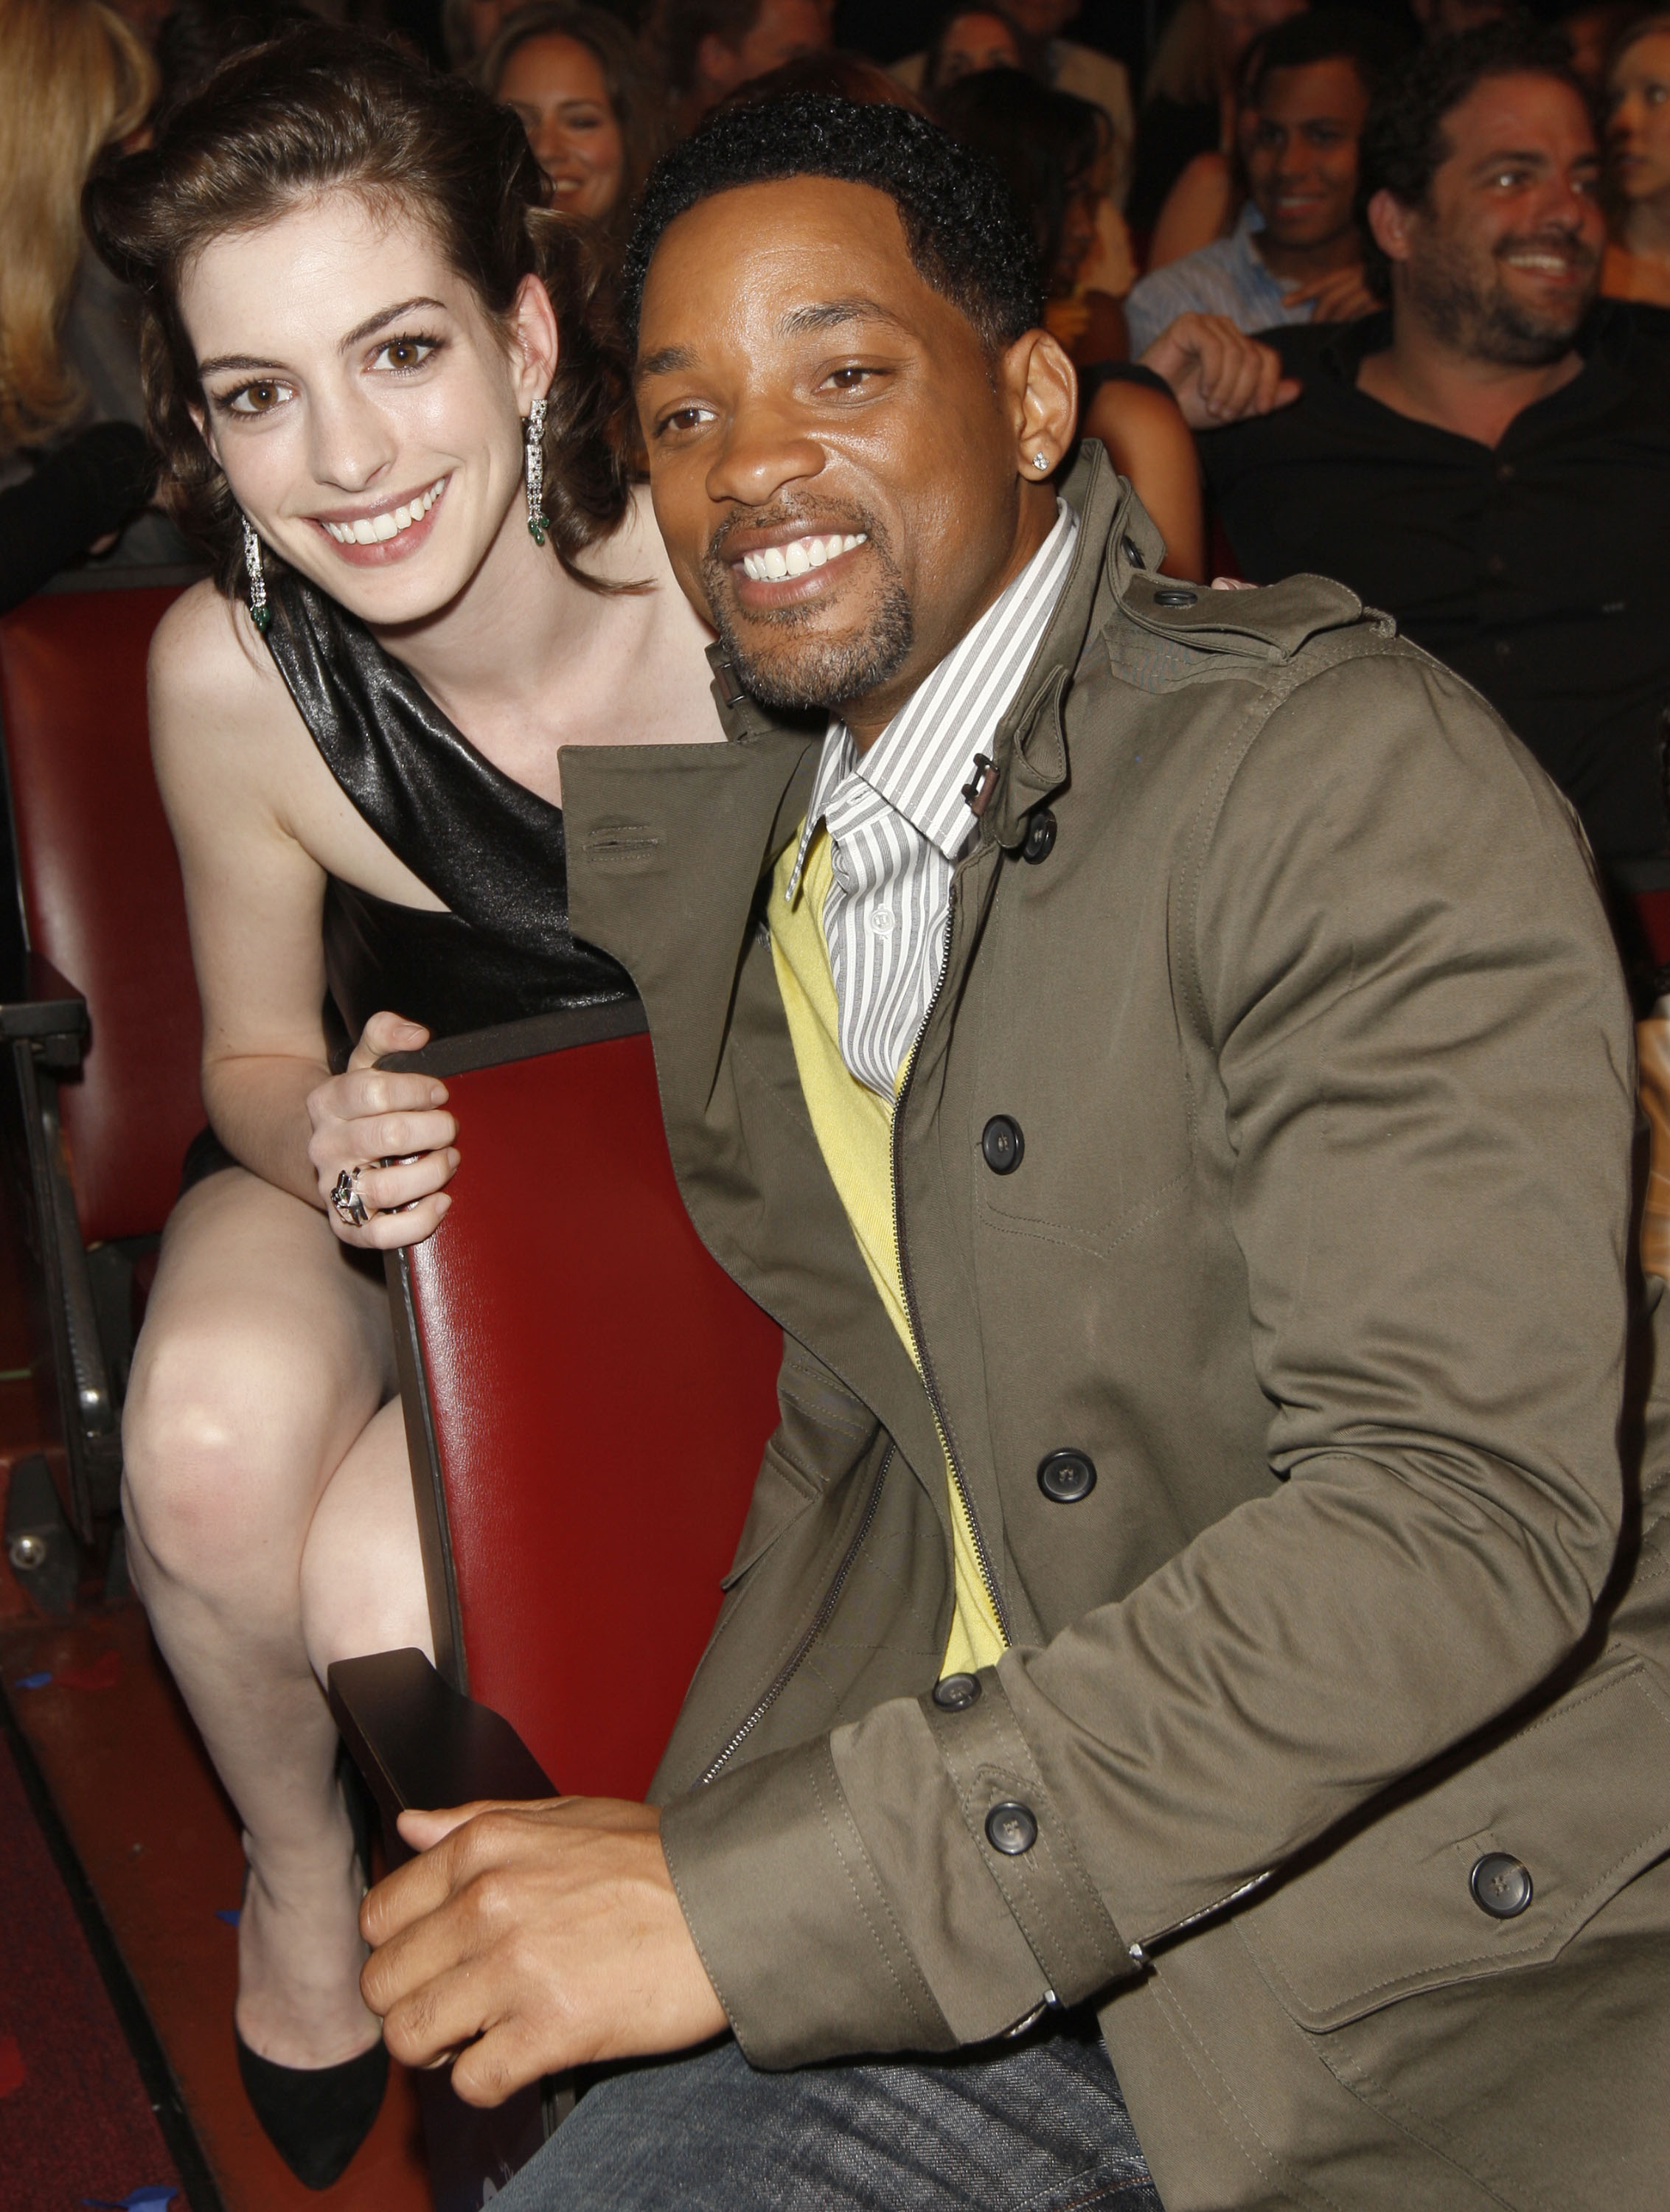 69523_Anne_Hathaway_2008-06-01_-_2008_MTV_Movie_Awards_122_1193lo.JPG